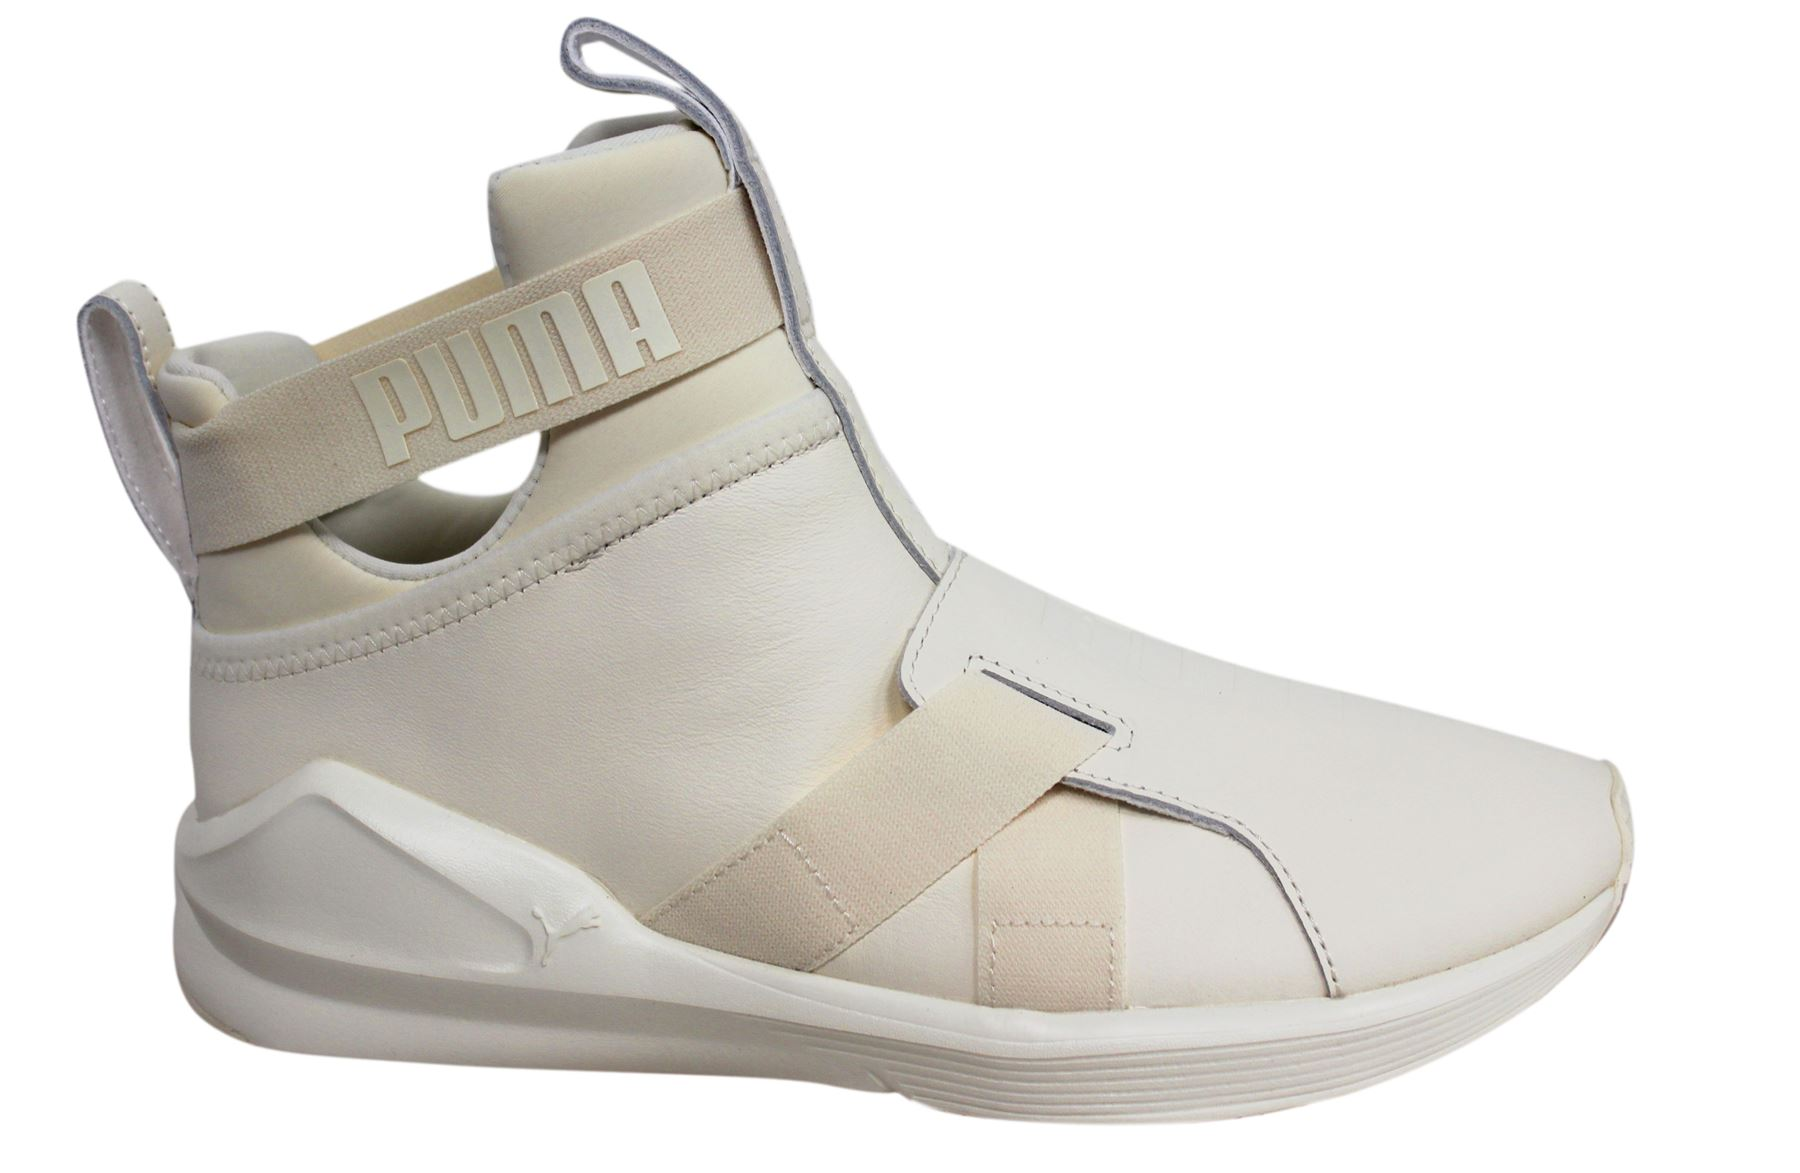 reputable site a5cac 9cbb8 Details about Puma Fierce Strap Leather Textile Whisper White Womens  Trainers 190569 02 M15